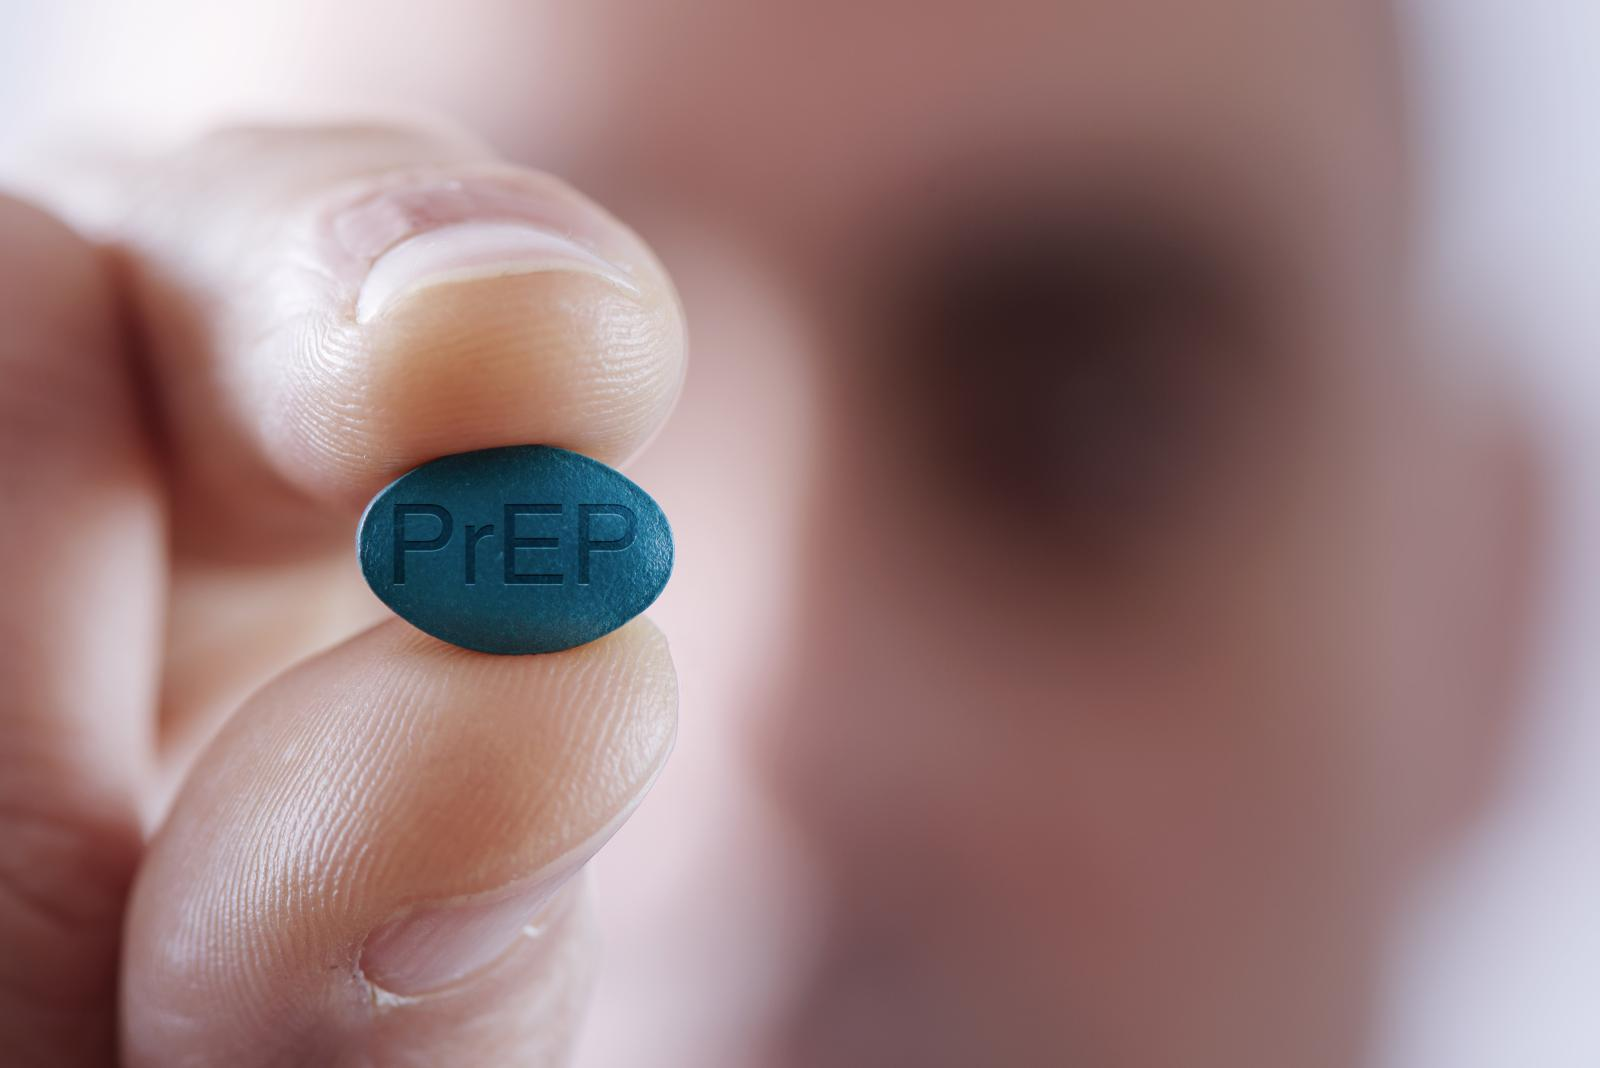 Trending News Today: PrEP Use Among Urban MSM Increasing, But Many Still Lack Access